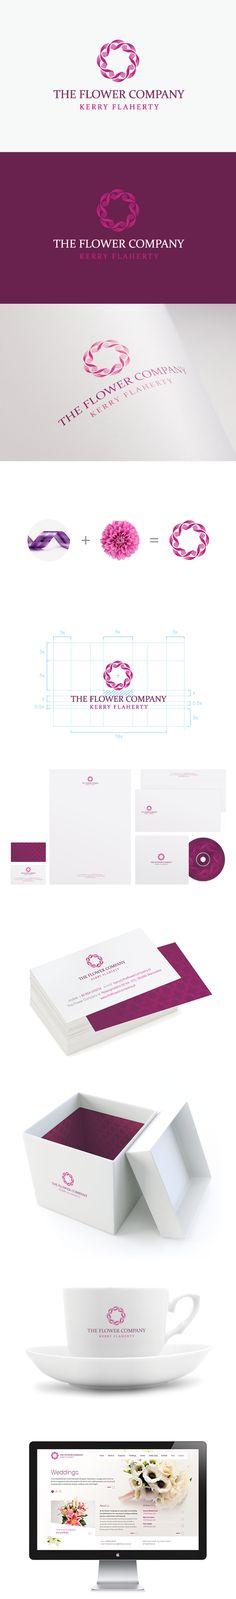 The Flower Company | Branding